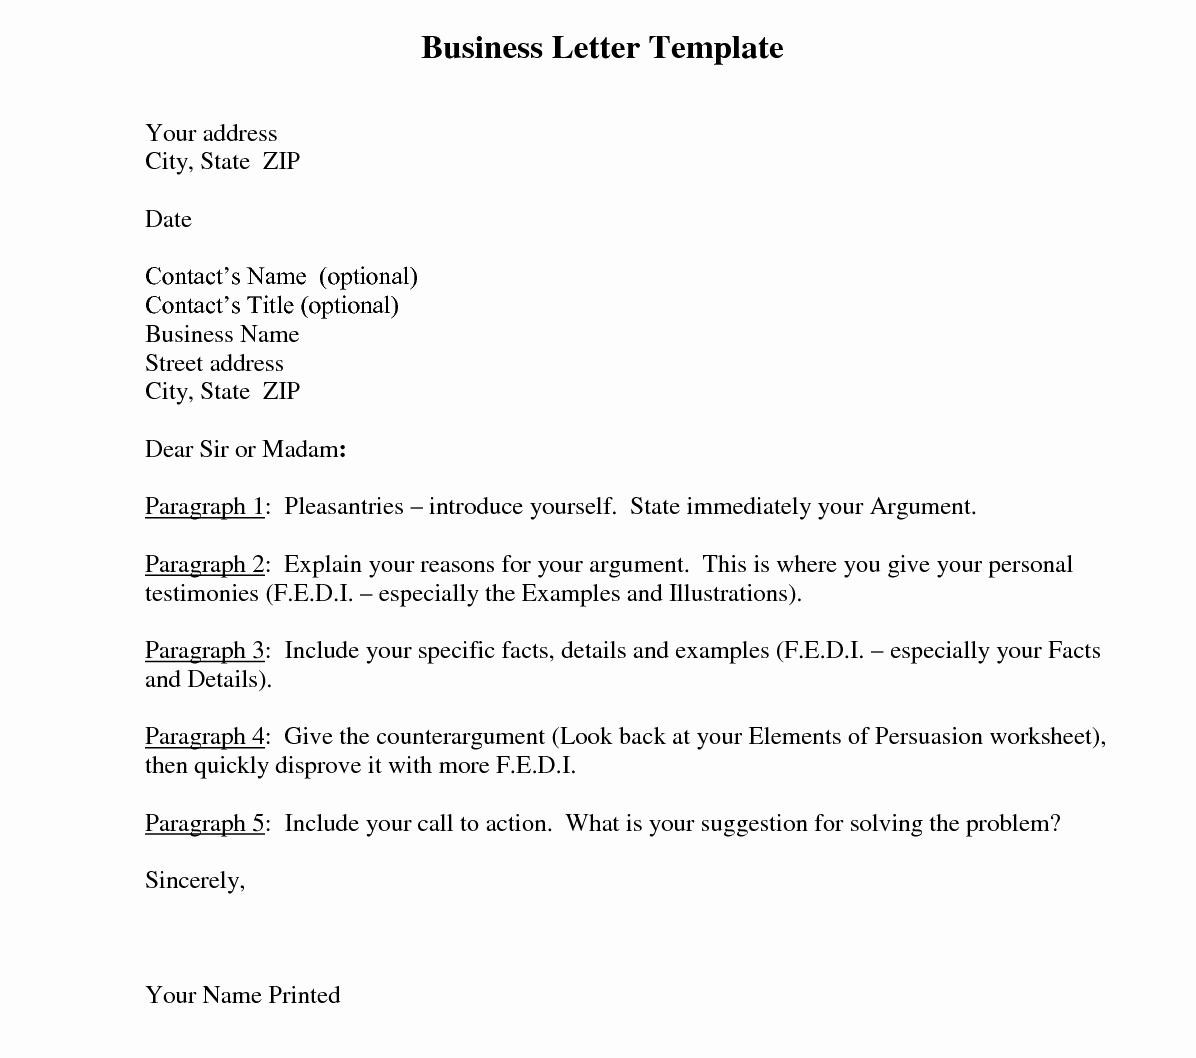 Business Letter Template and their Benefits